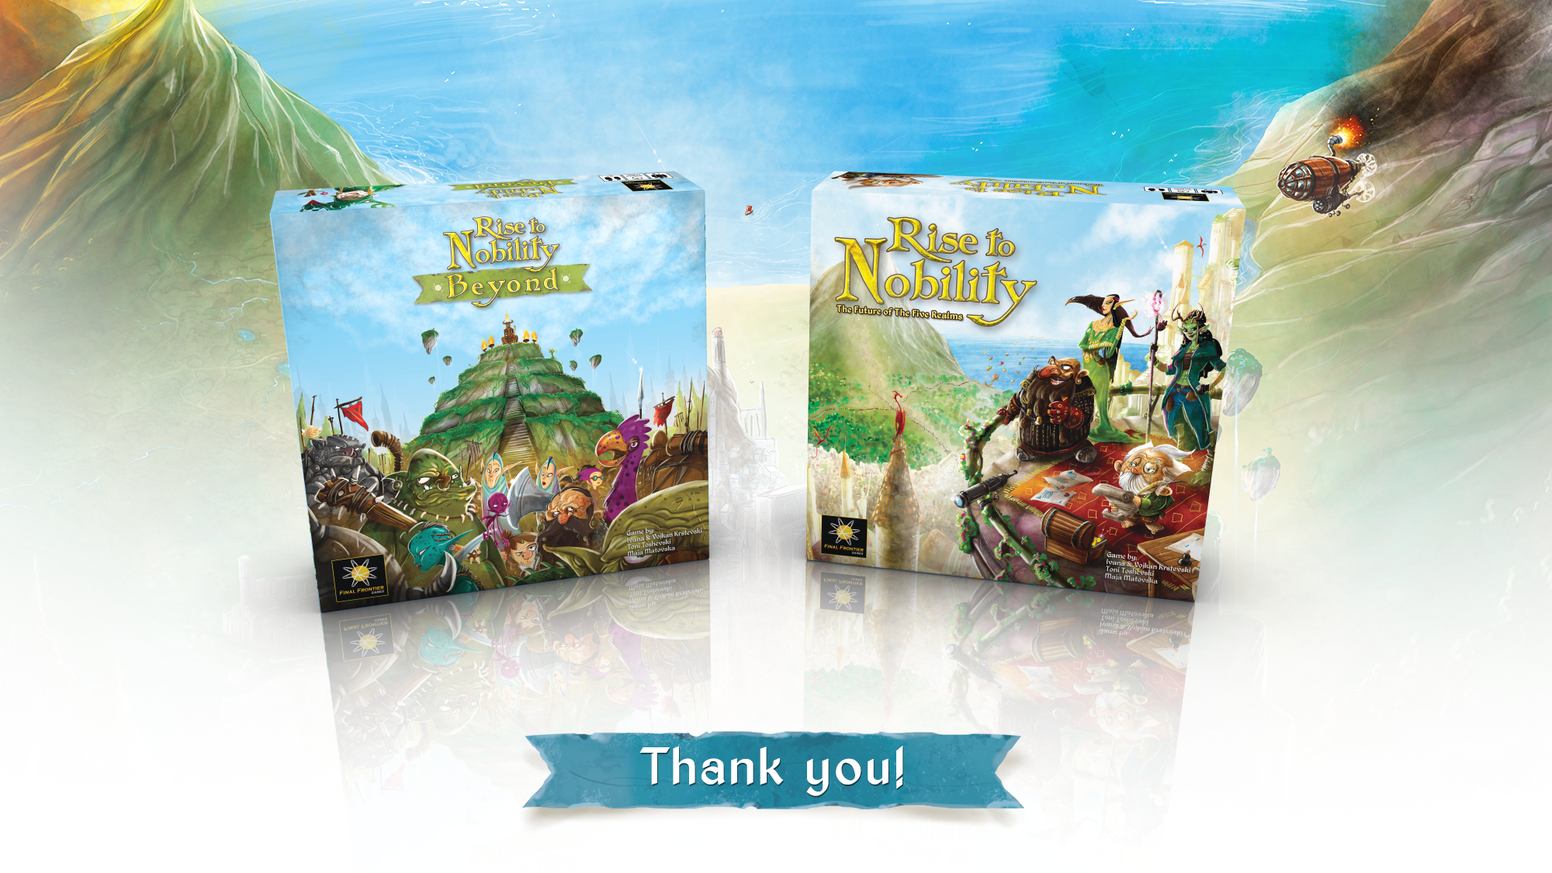 Expansion to the highly successful Kickstarter Rise to Nobility.